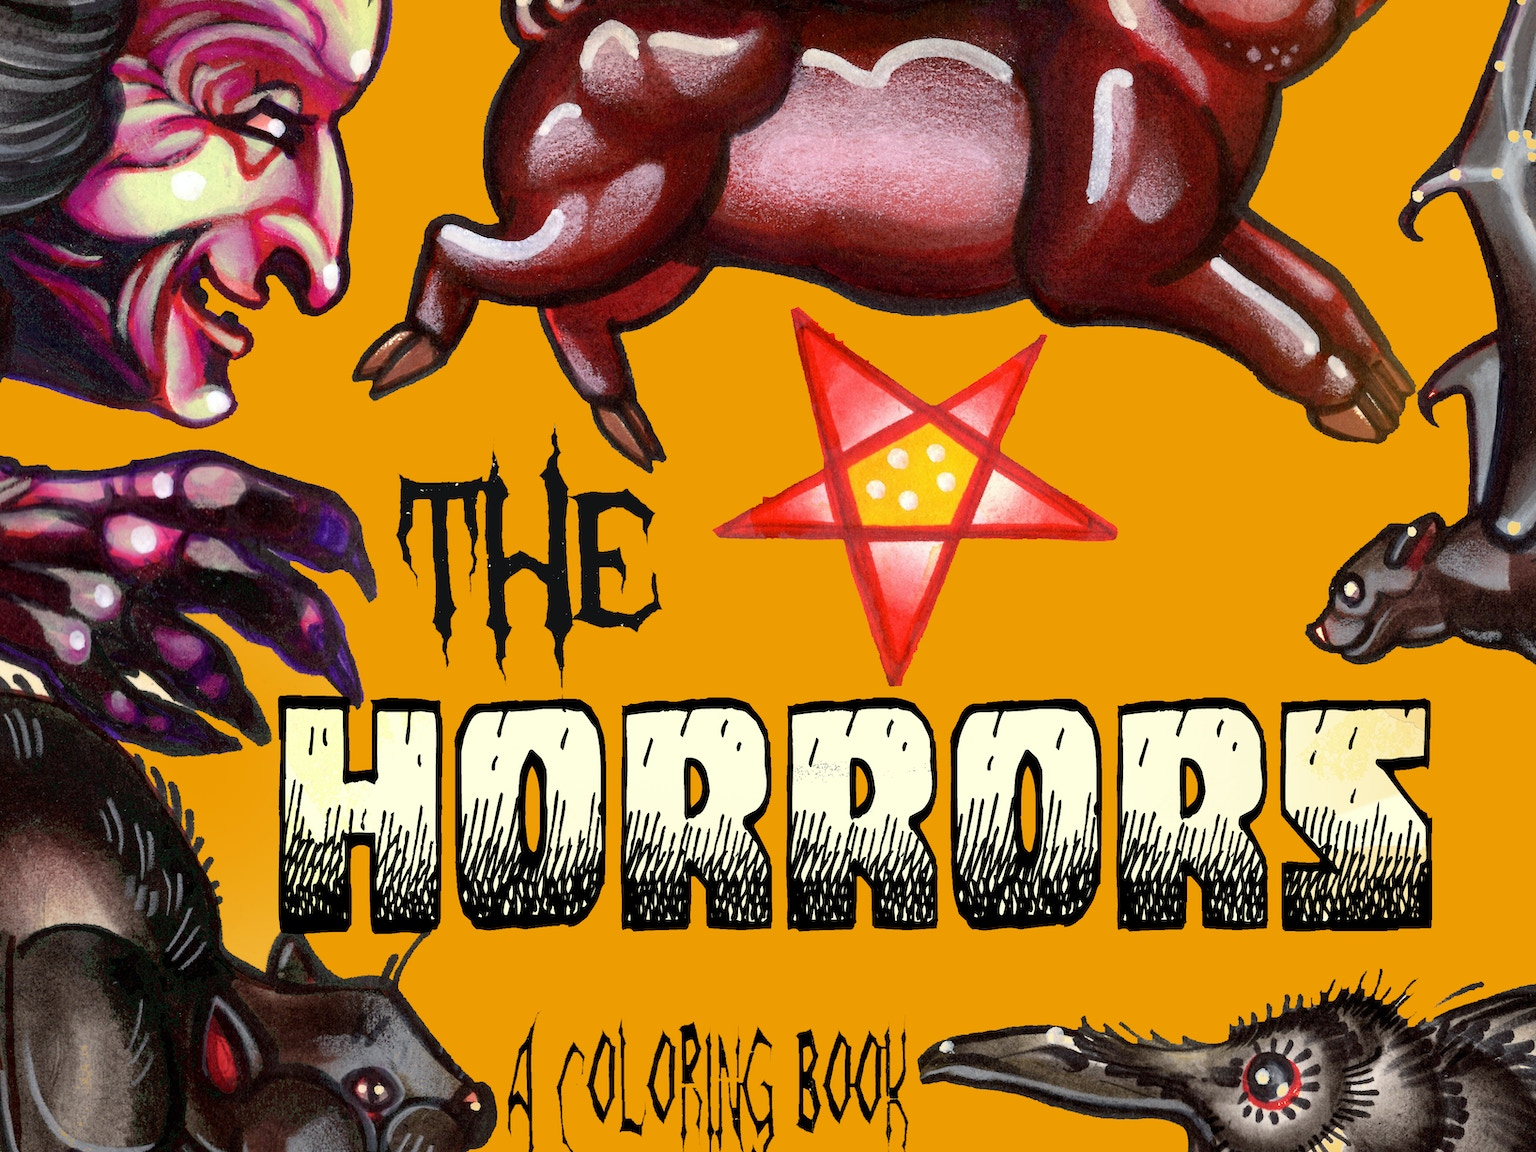 The Horrors: coloring book of cryptids, ghosts and ...